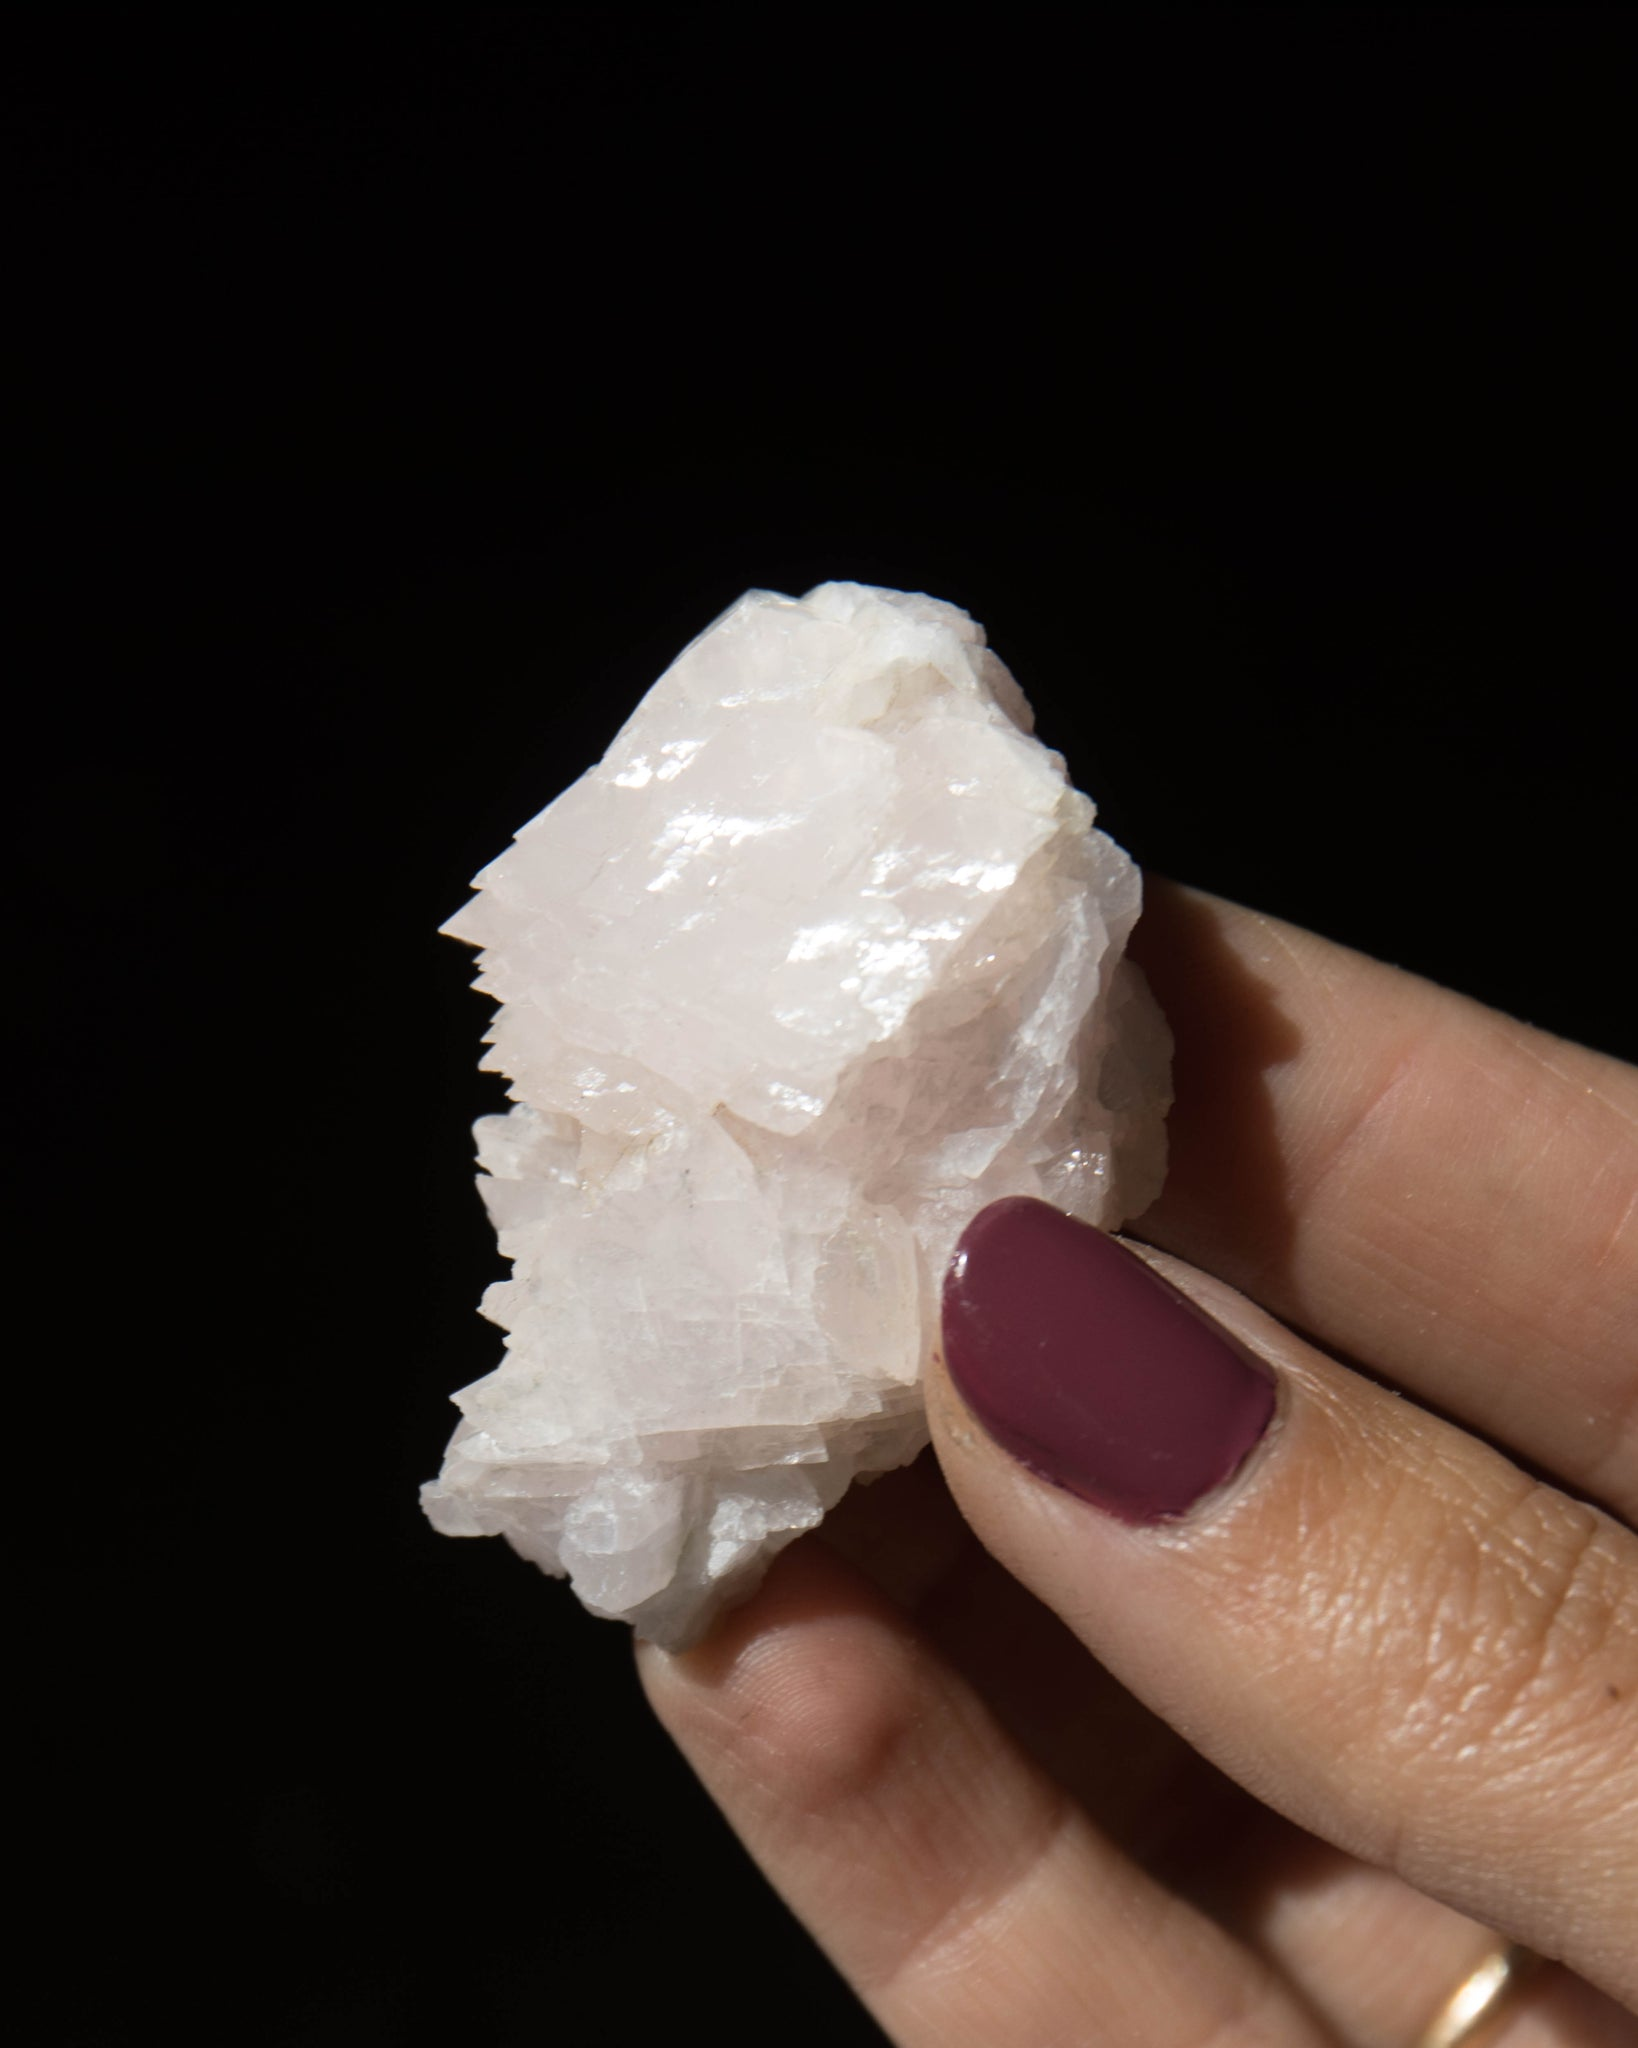 Small Crystalized Mangano Calcite